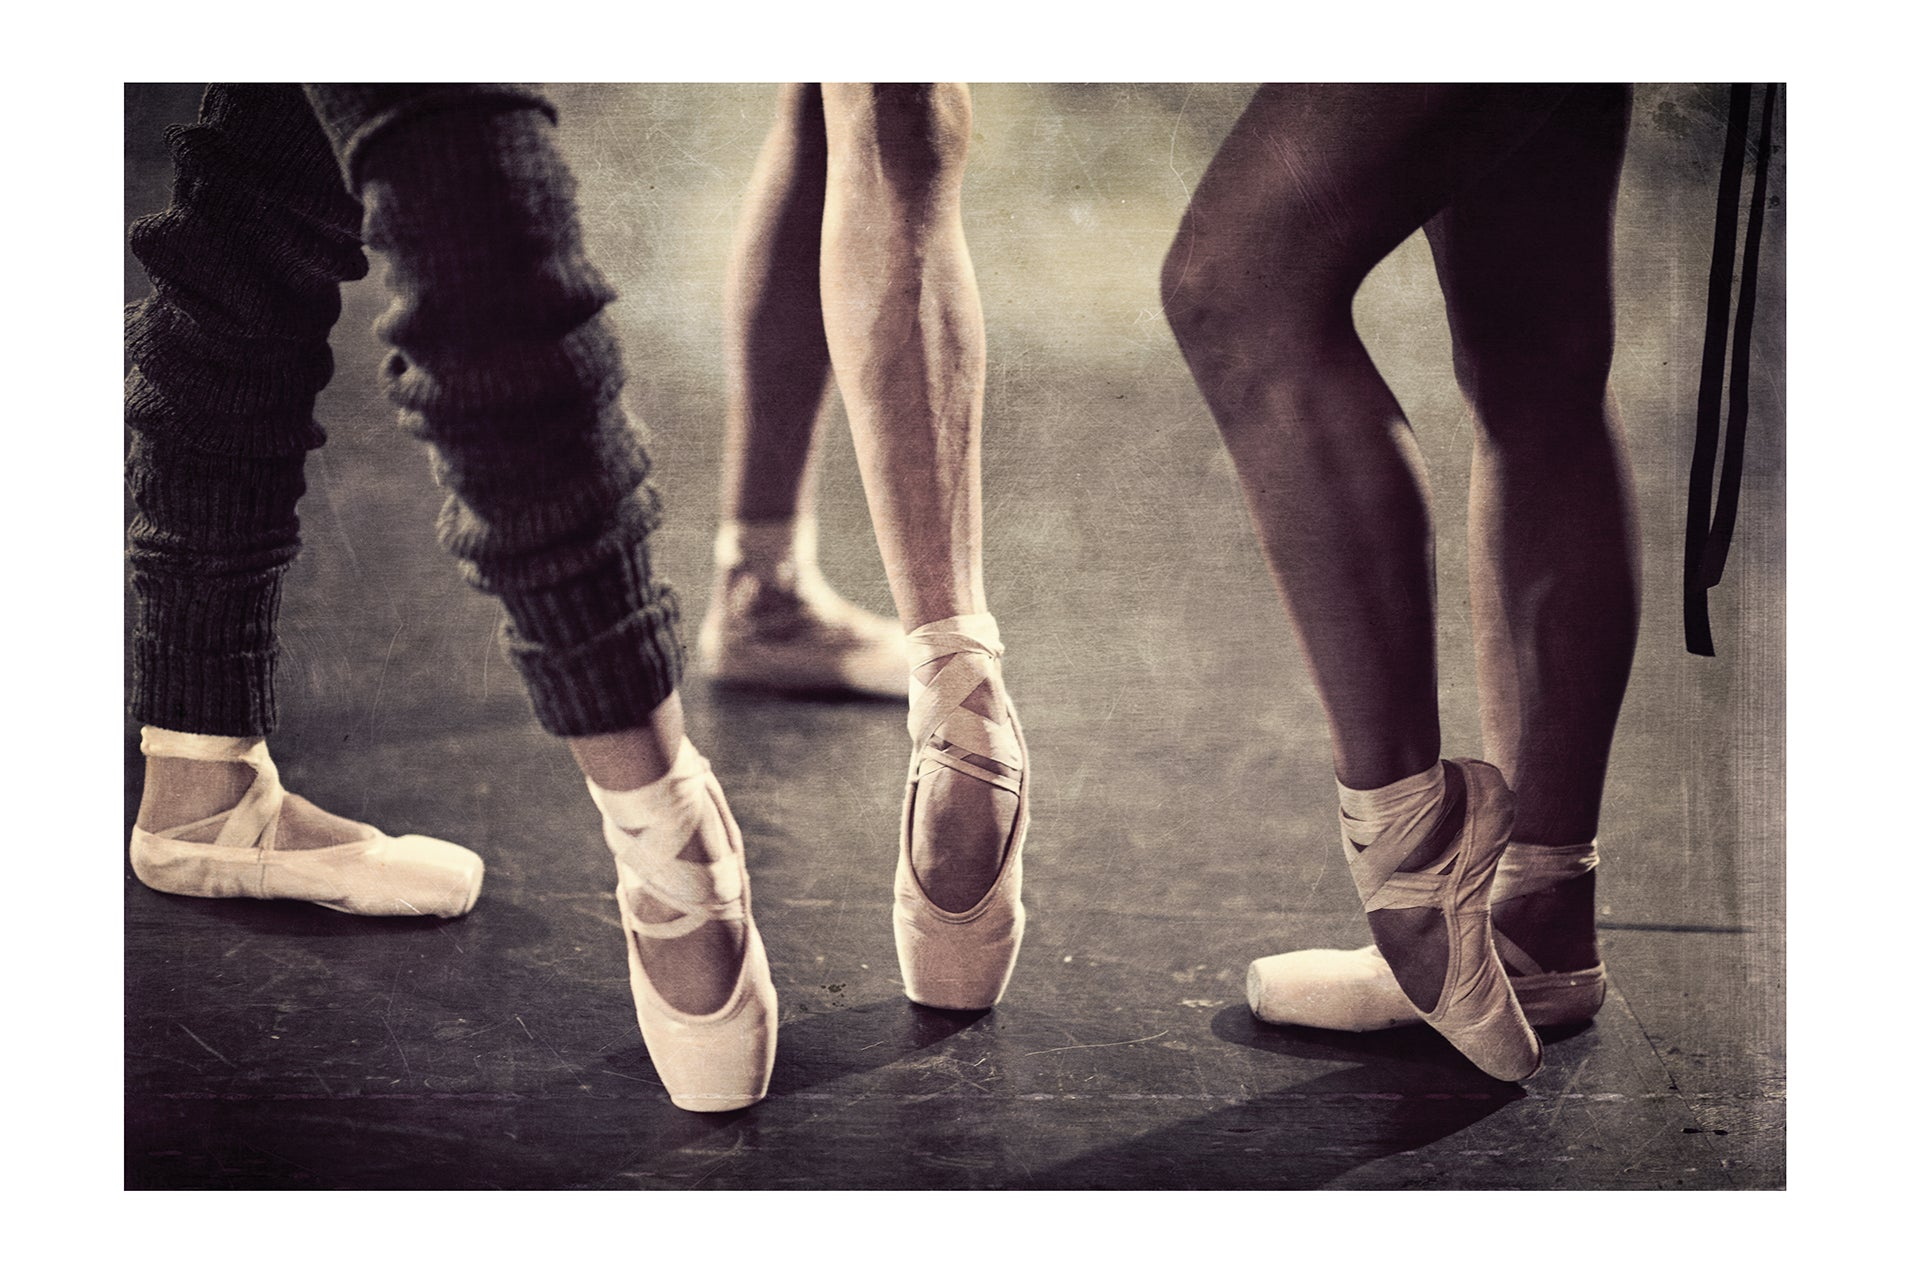 Jacques Weyers - Black Swan 05 - Group of ballet dancer's legs